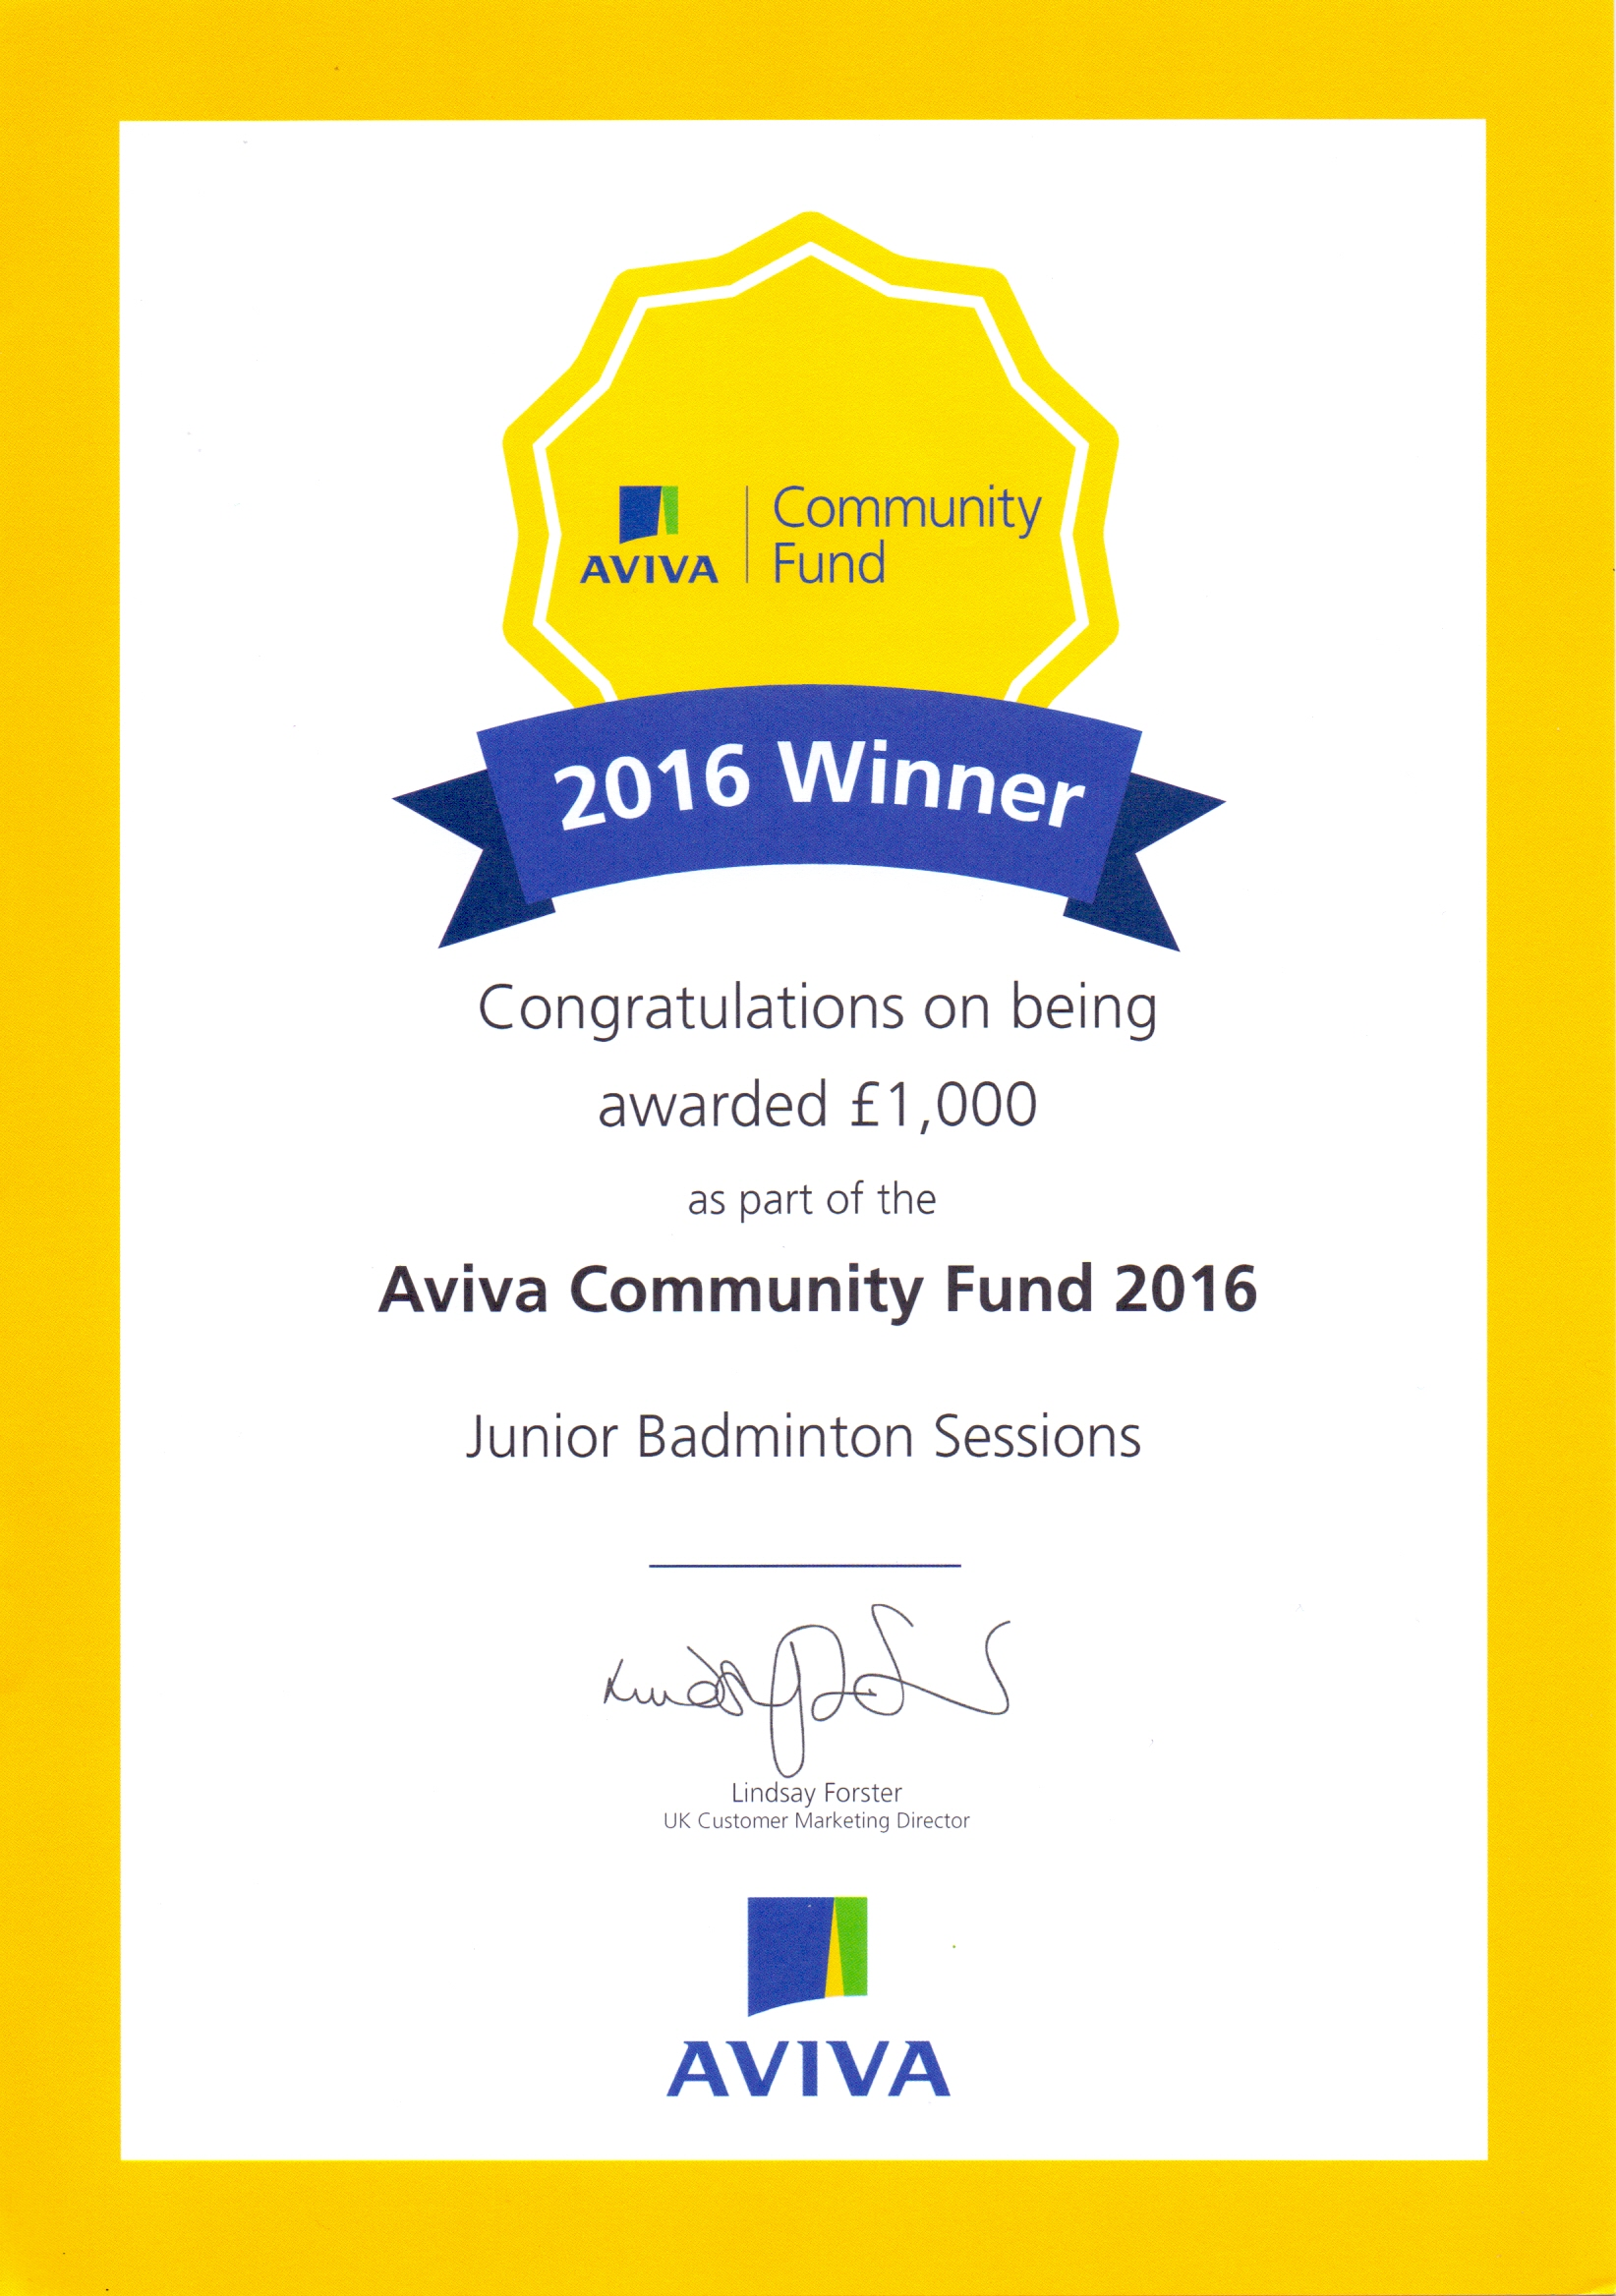 Certificate winner formal reports samples aviva community fund 2016 winners certificate mansfield junior aviva community fund 2016 winner certificate aviva community yadclub Image collections